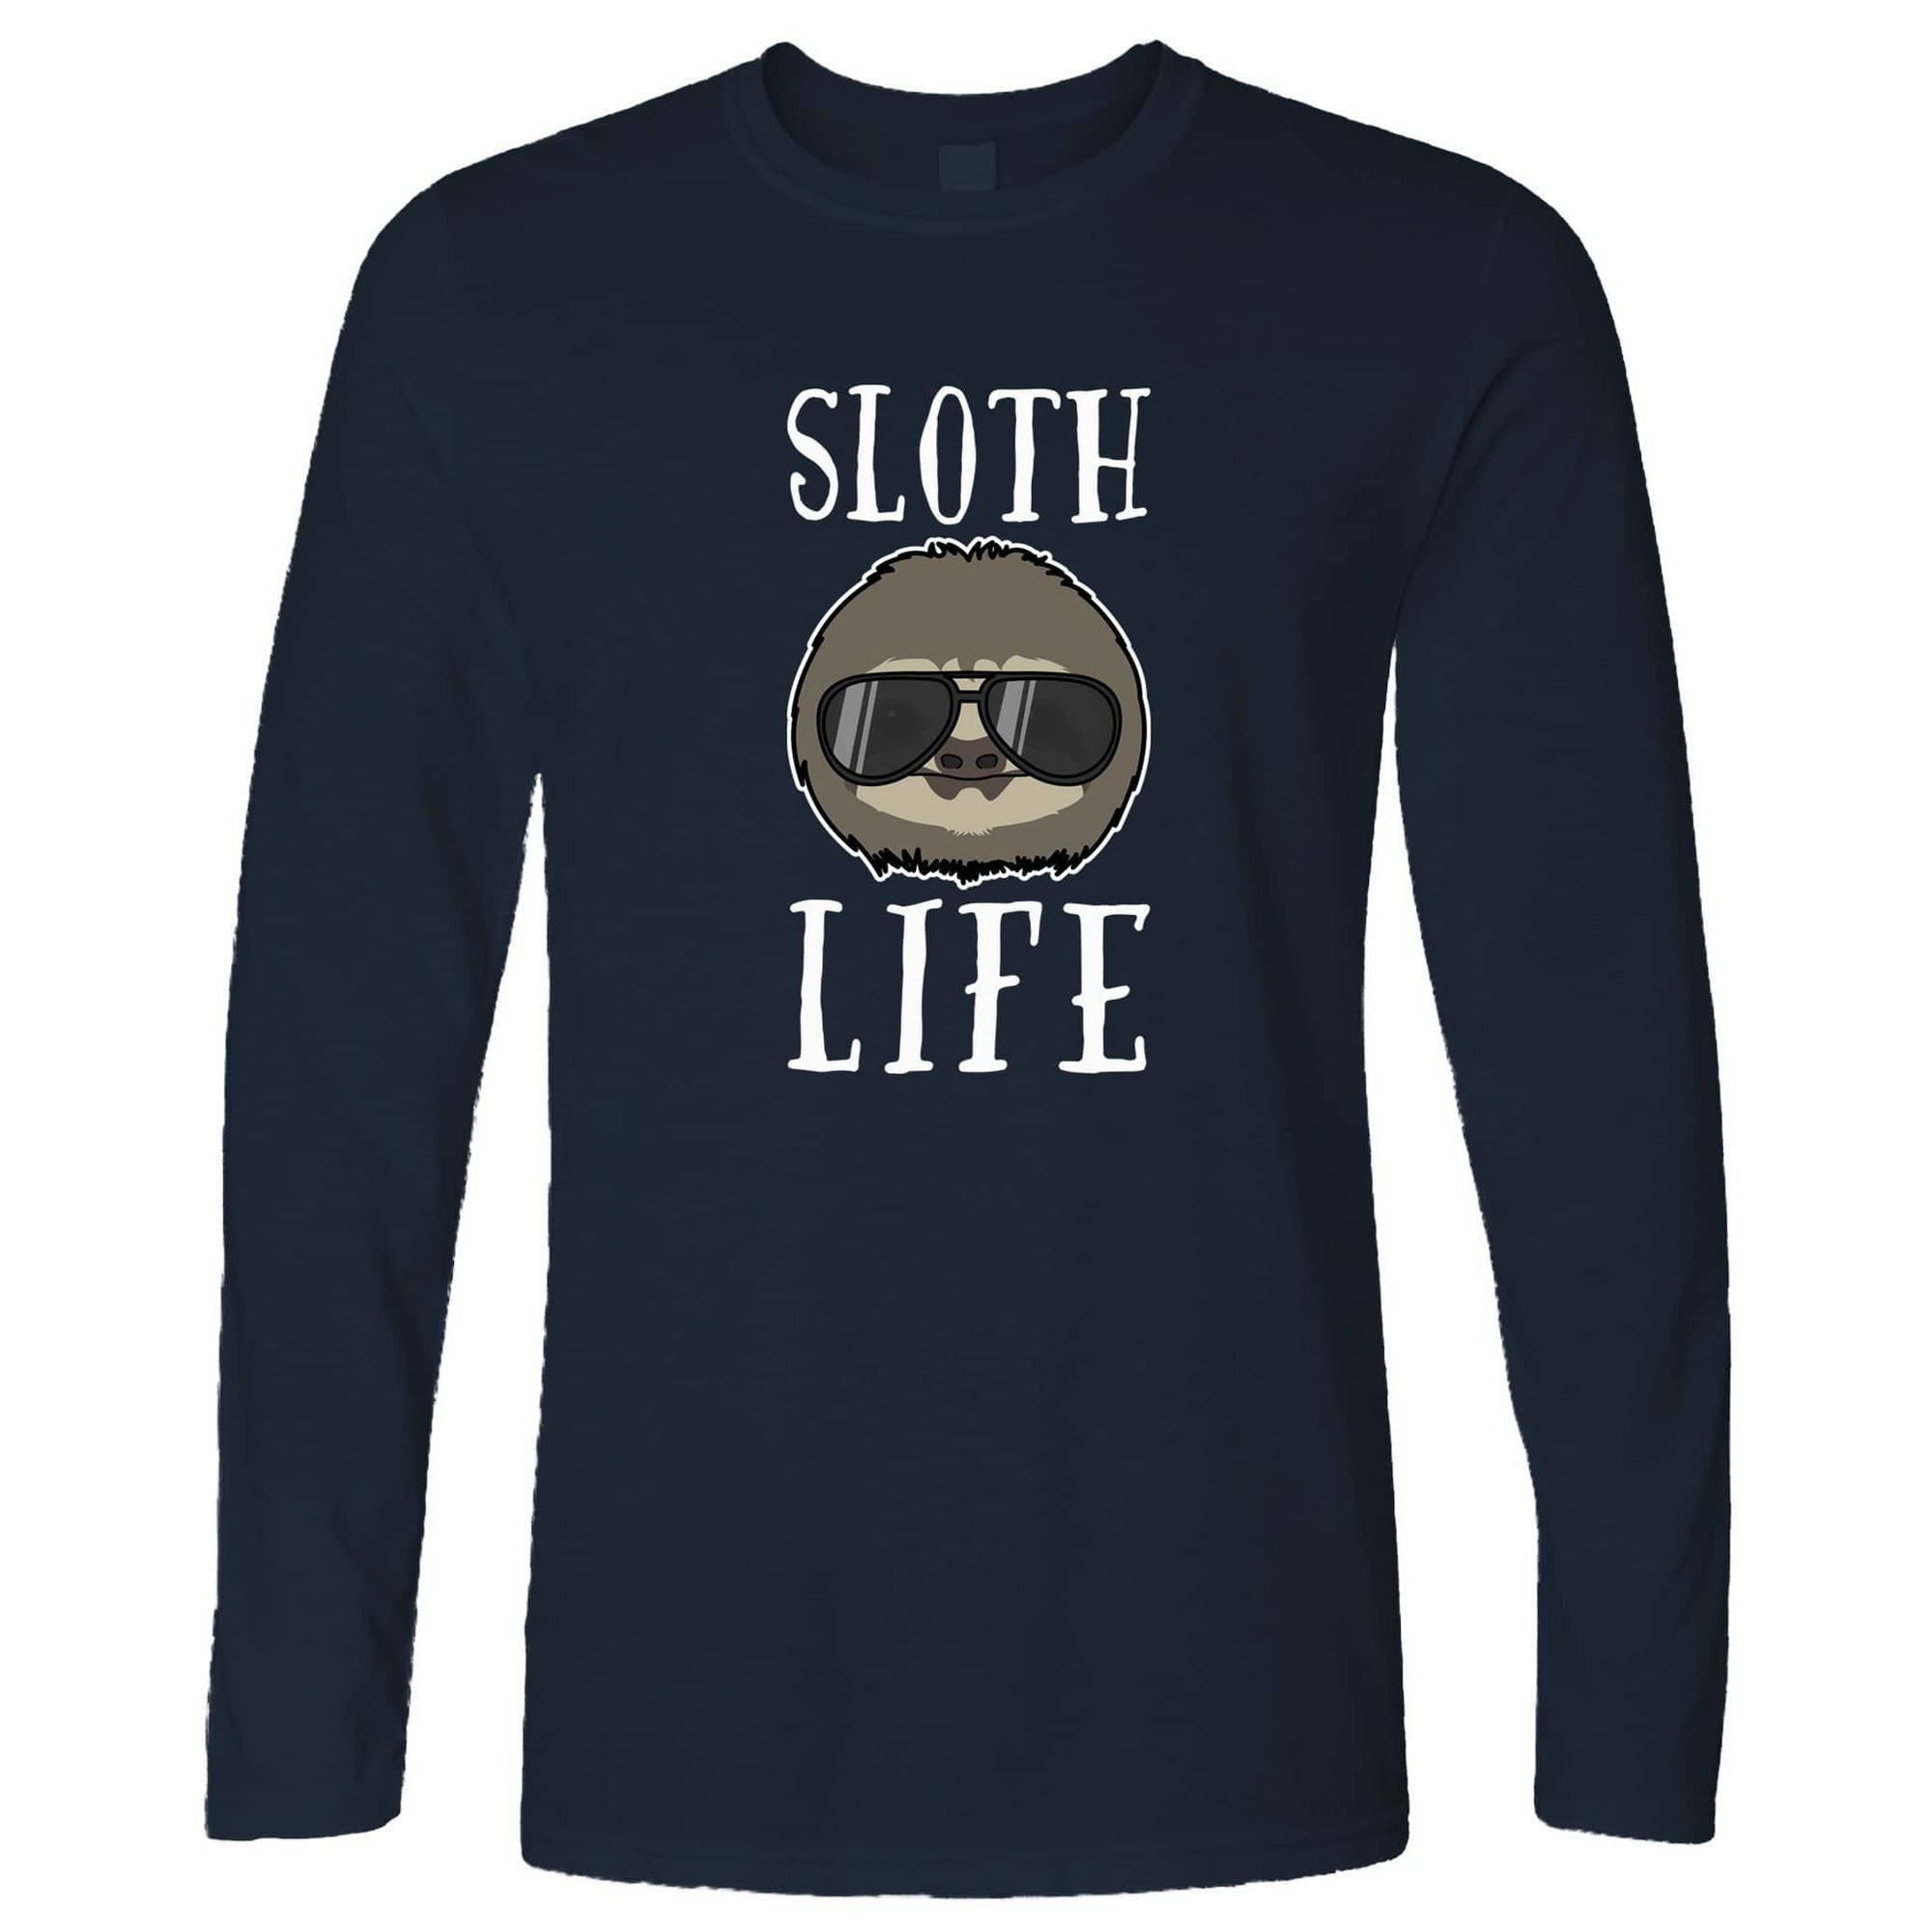 Funny Animal Long Sleeve Sloth Life Novelty Pun Slogan